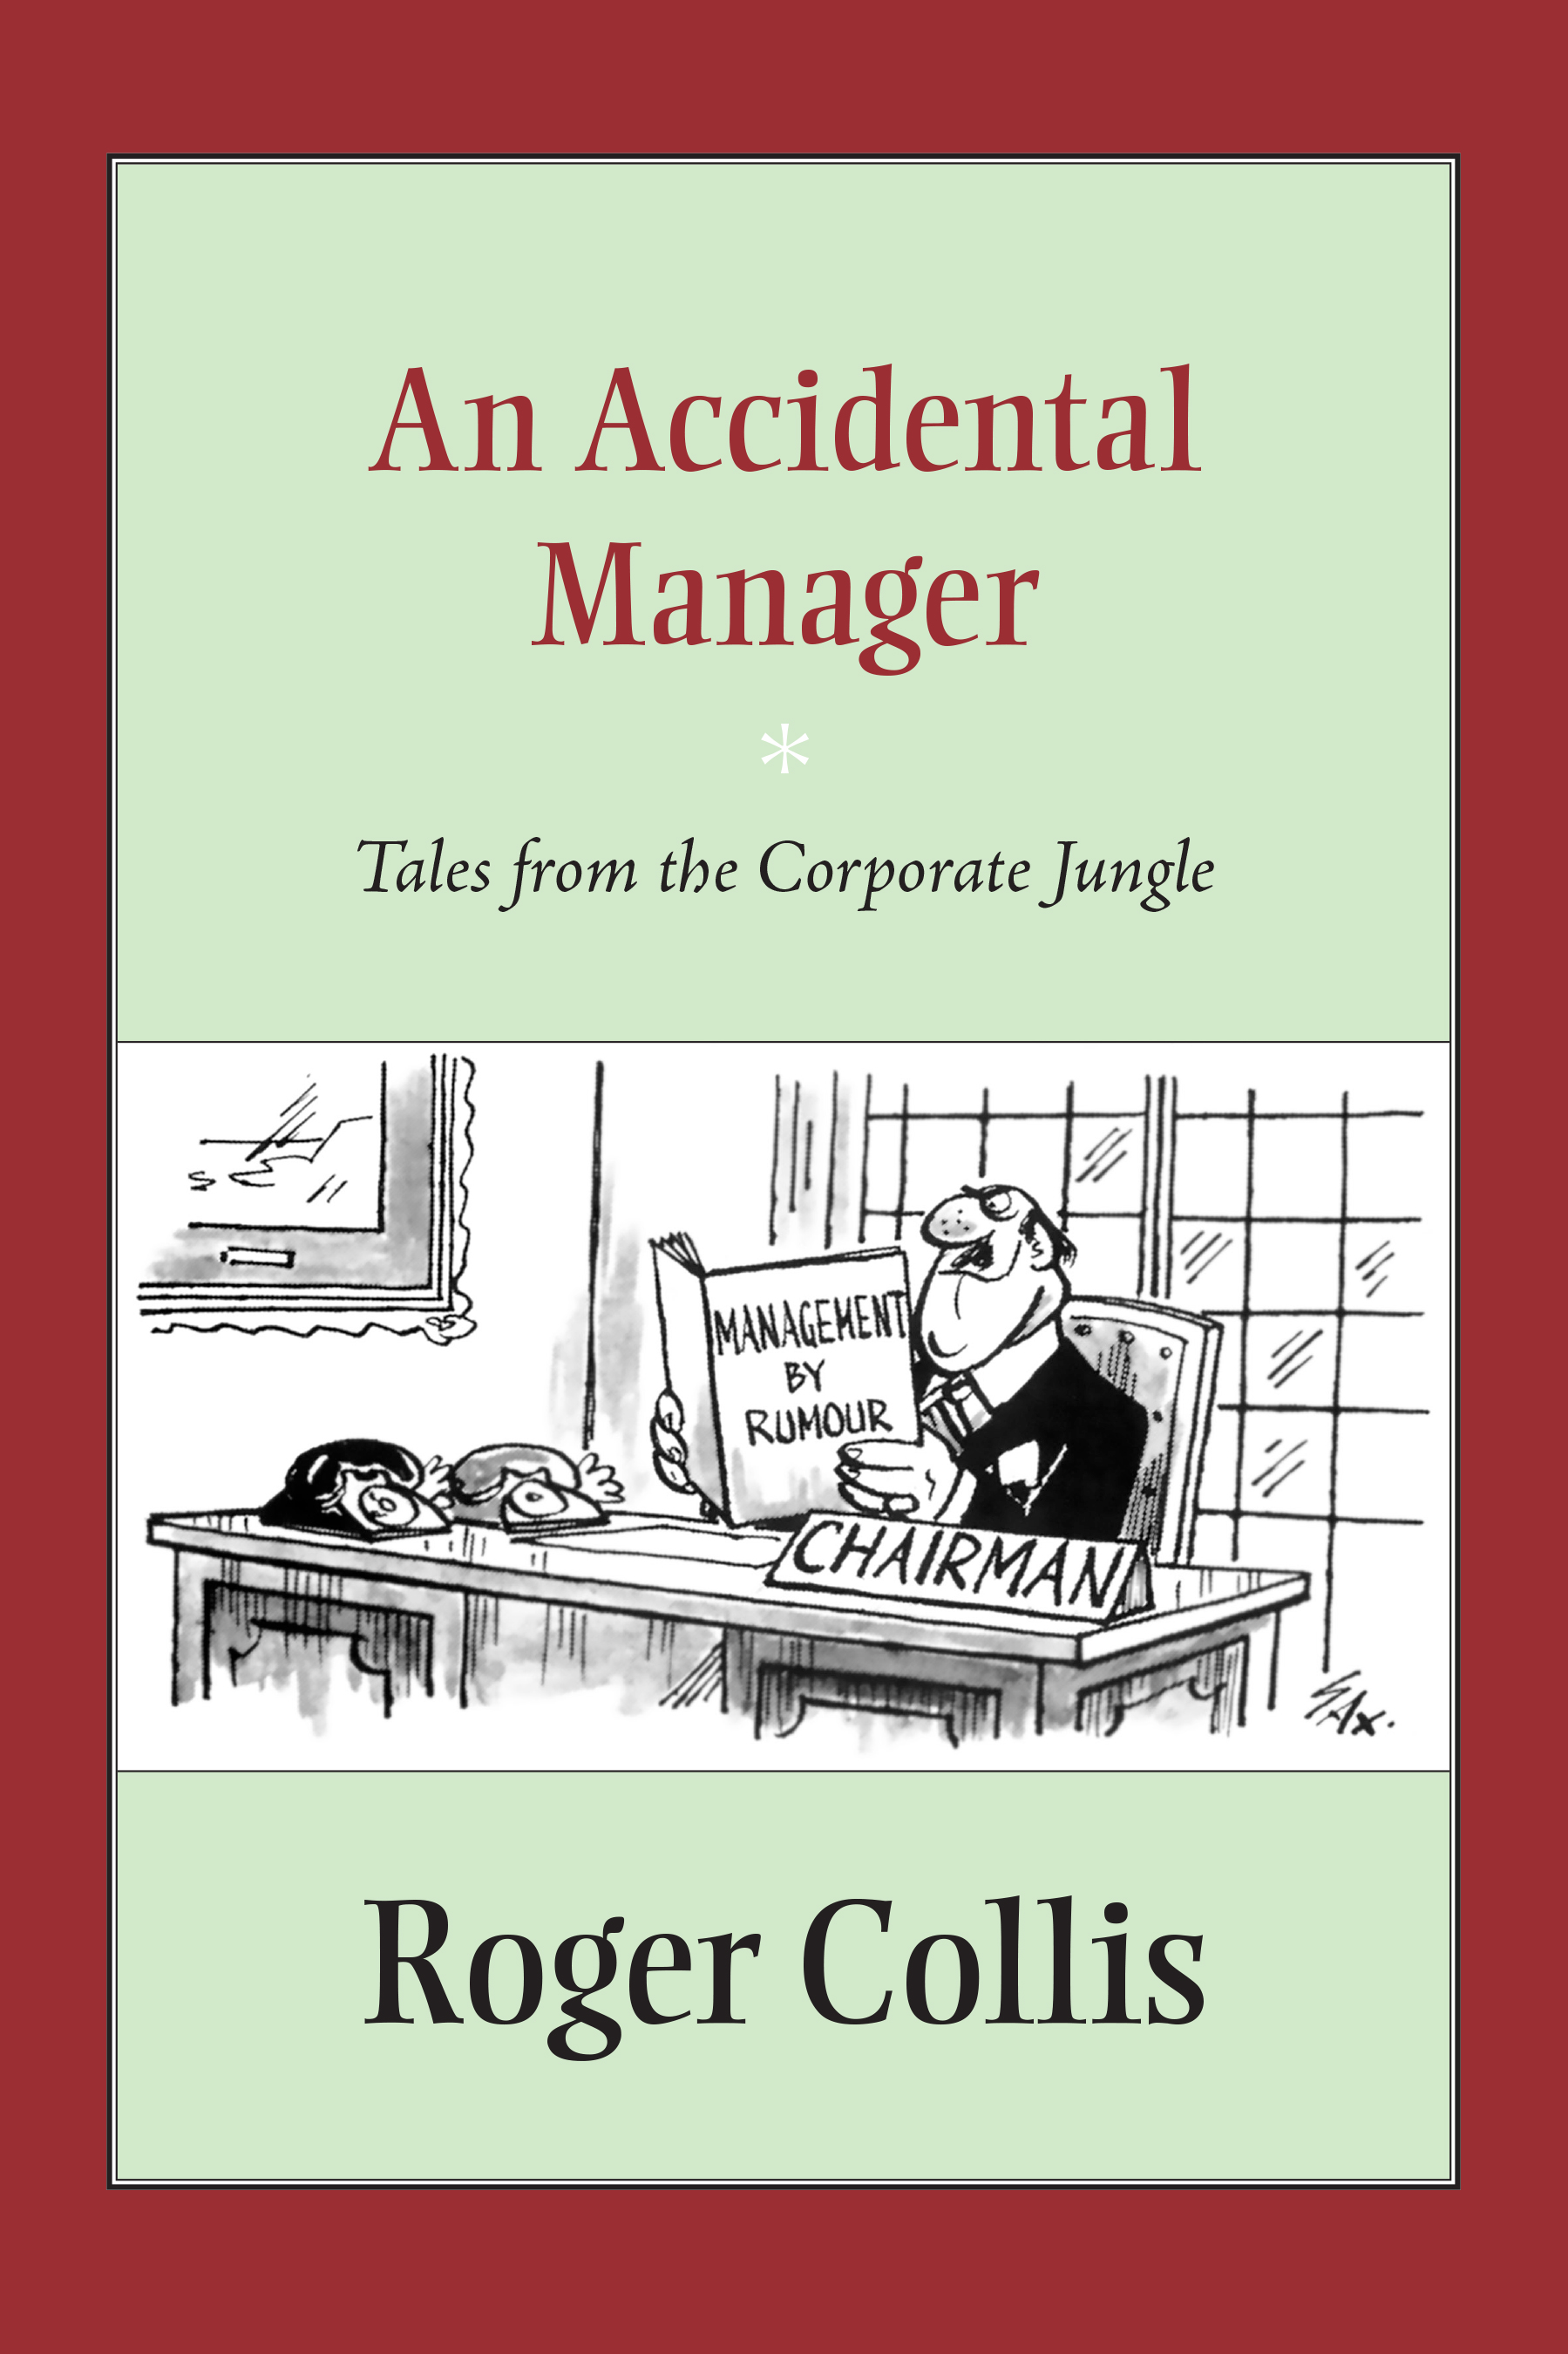 AccidentalManagercover